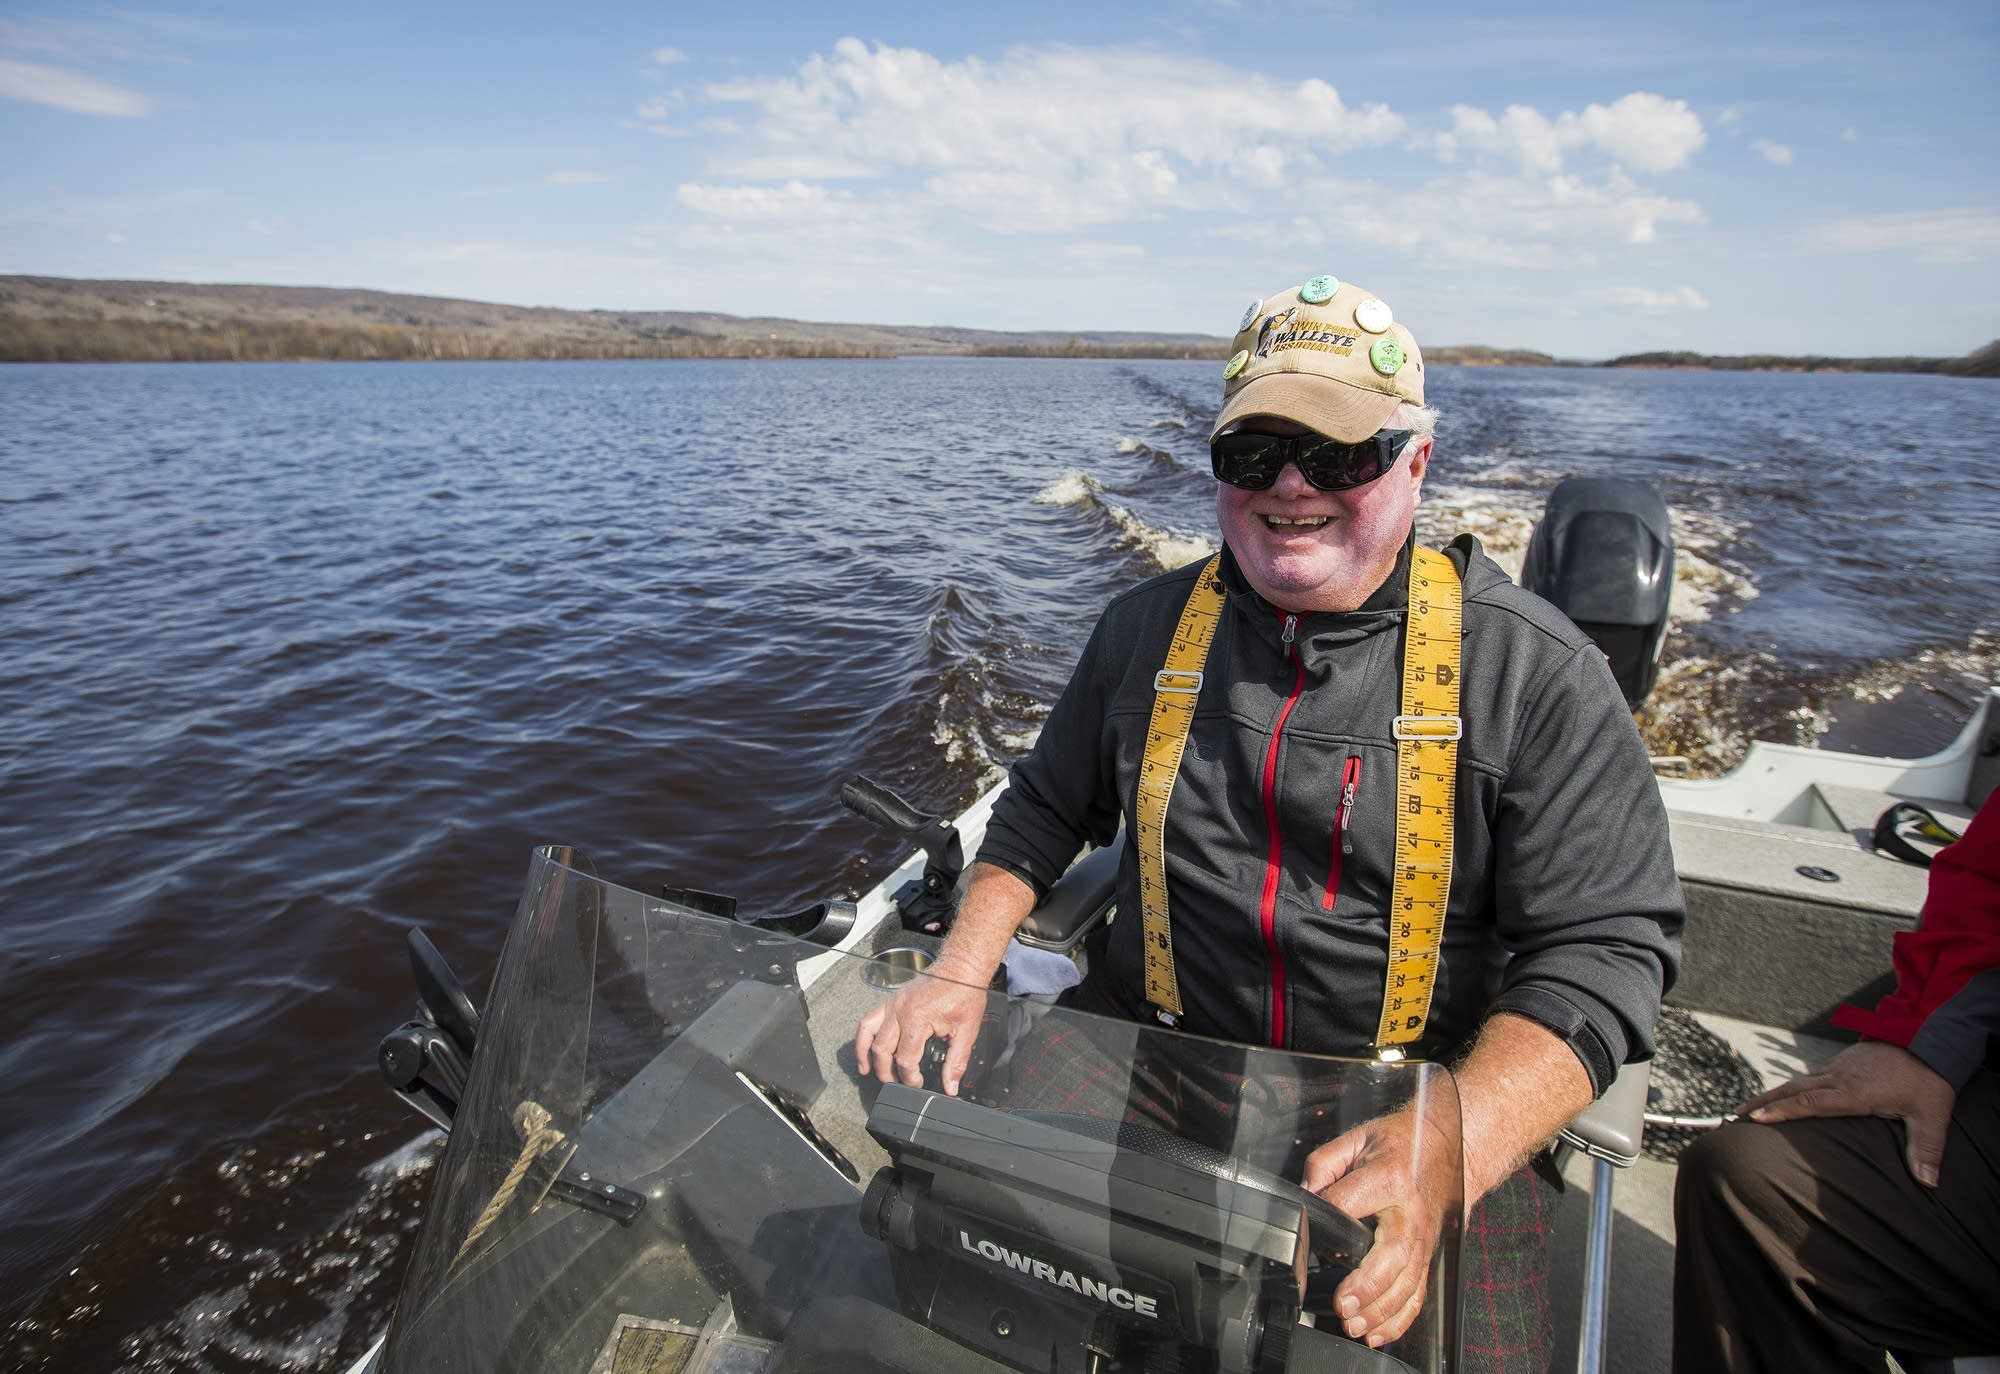 Fisherman Rob Maas spends over 200 days a year on the St. Louis River.